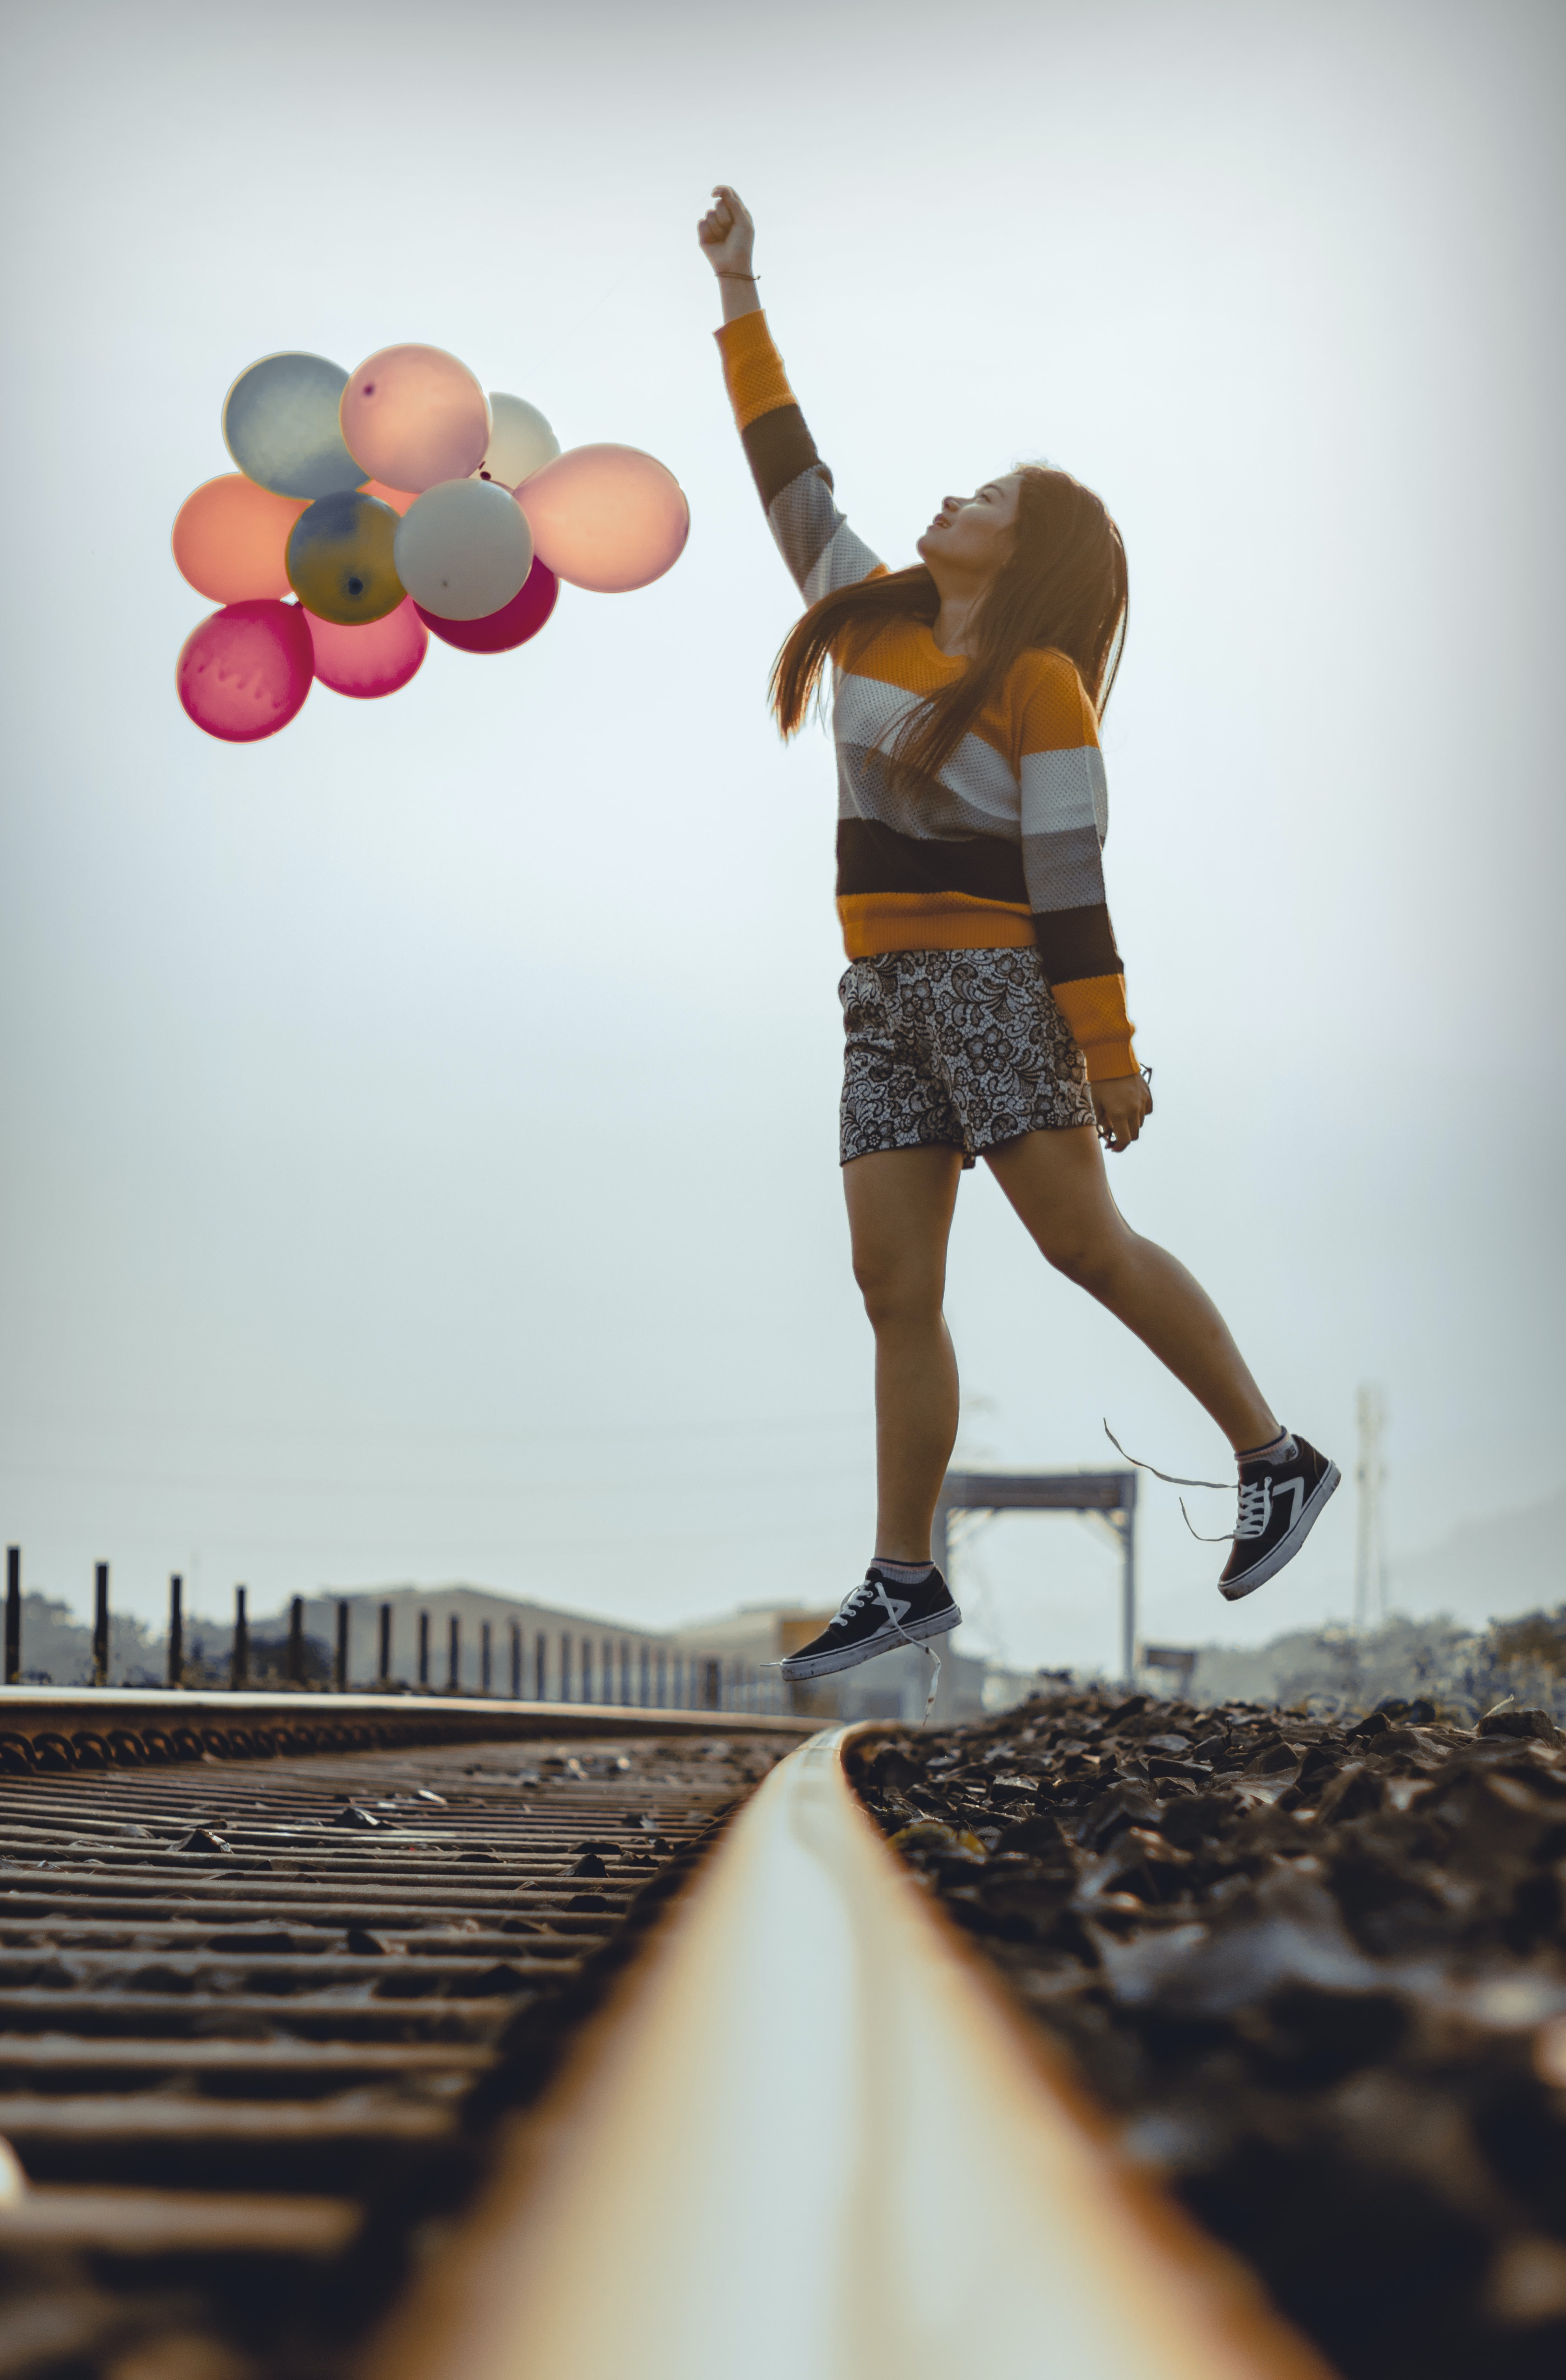 woman holding balloons while jumping on train railways